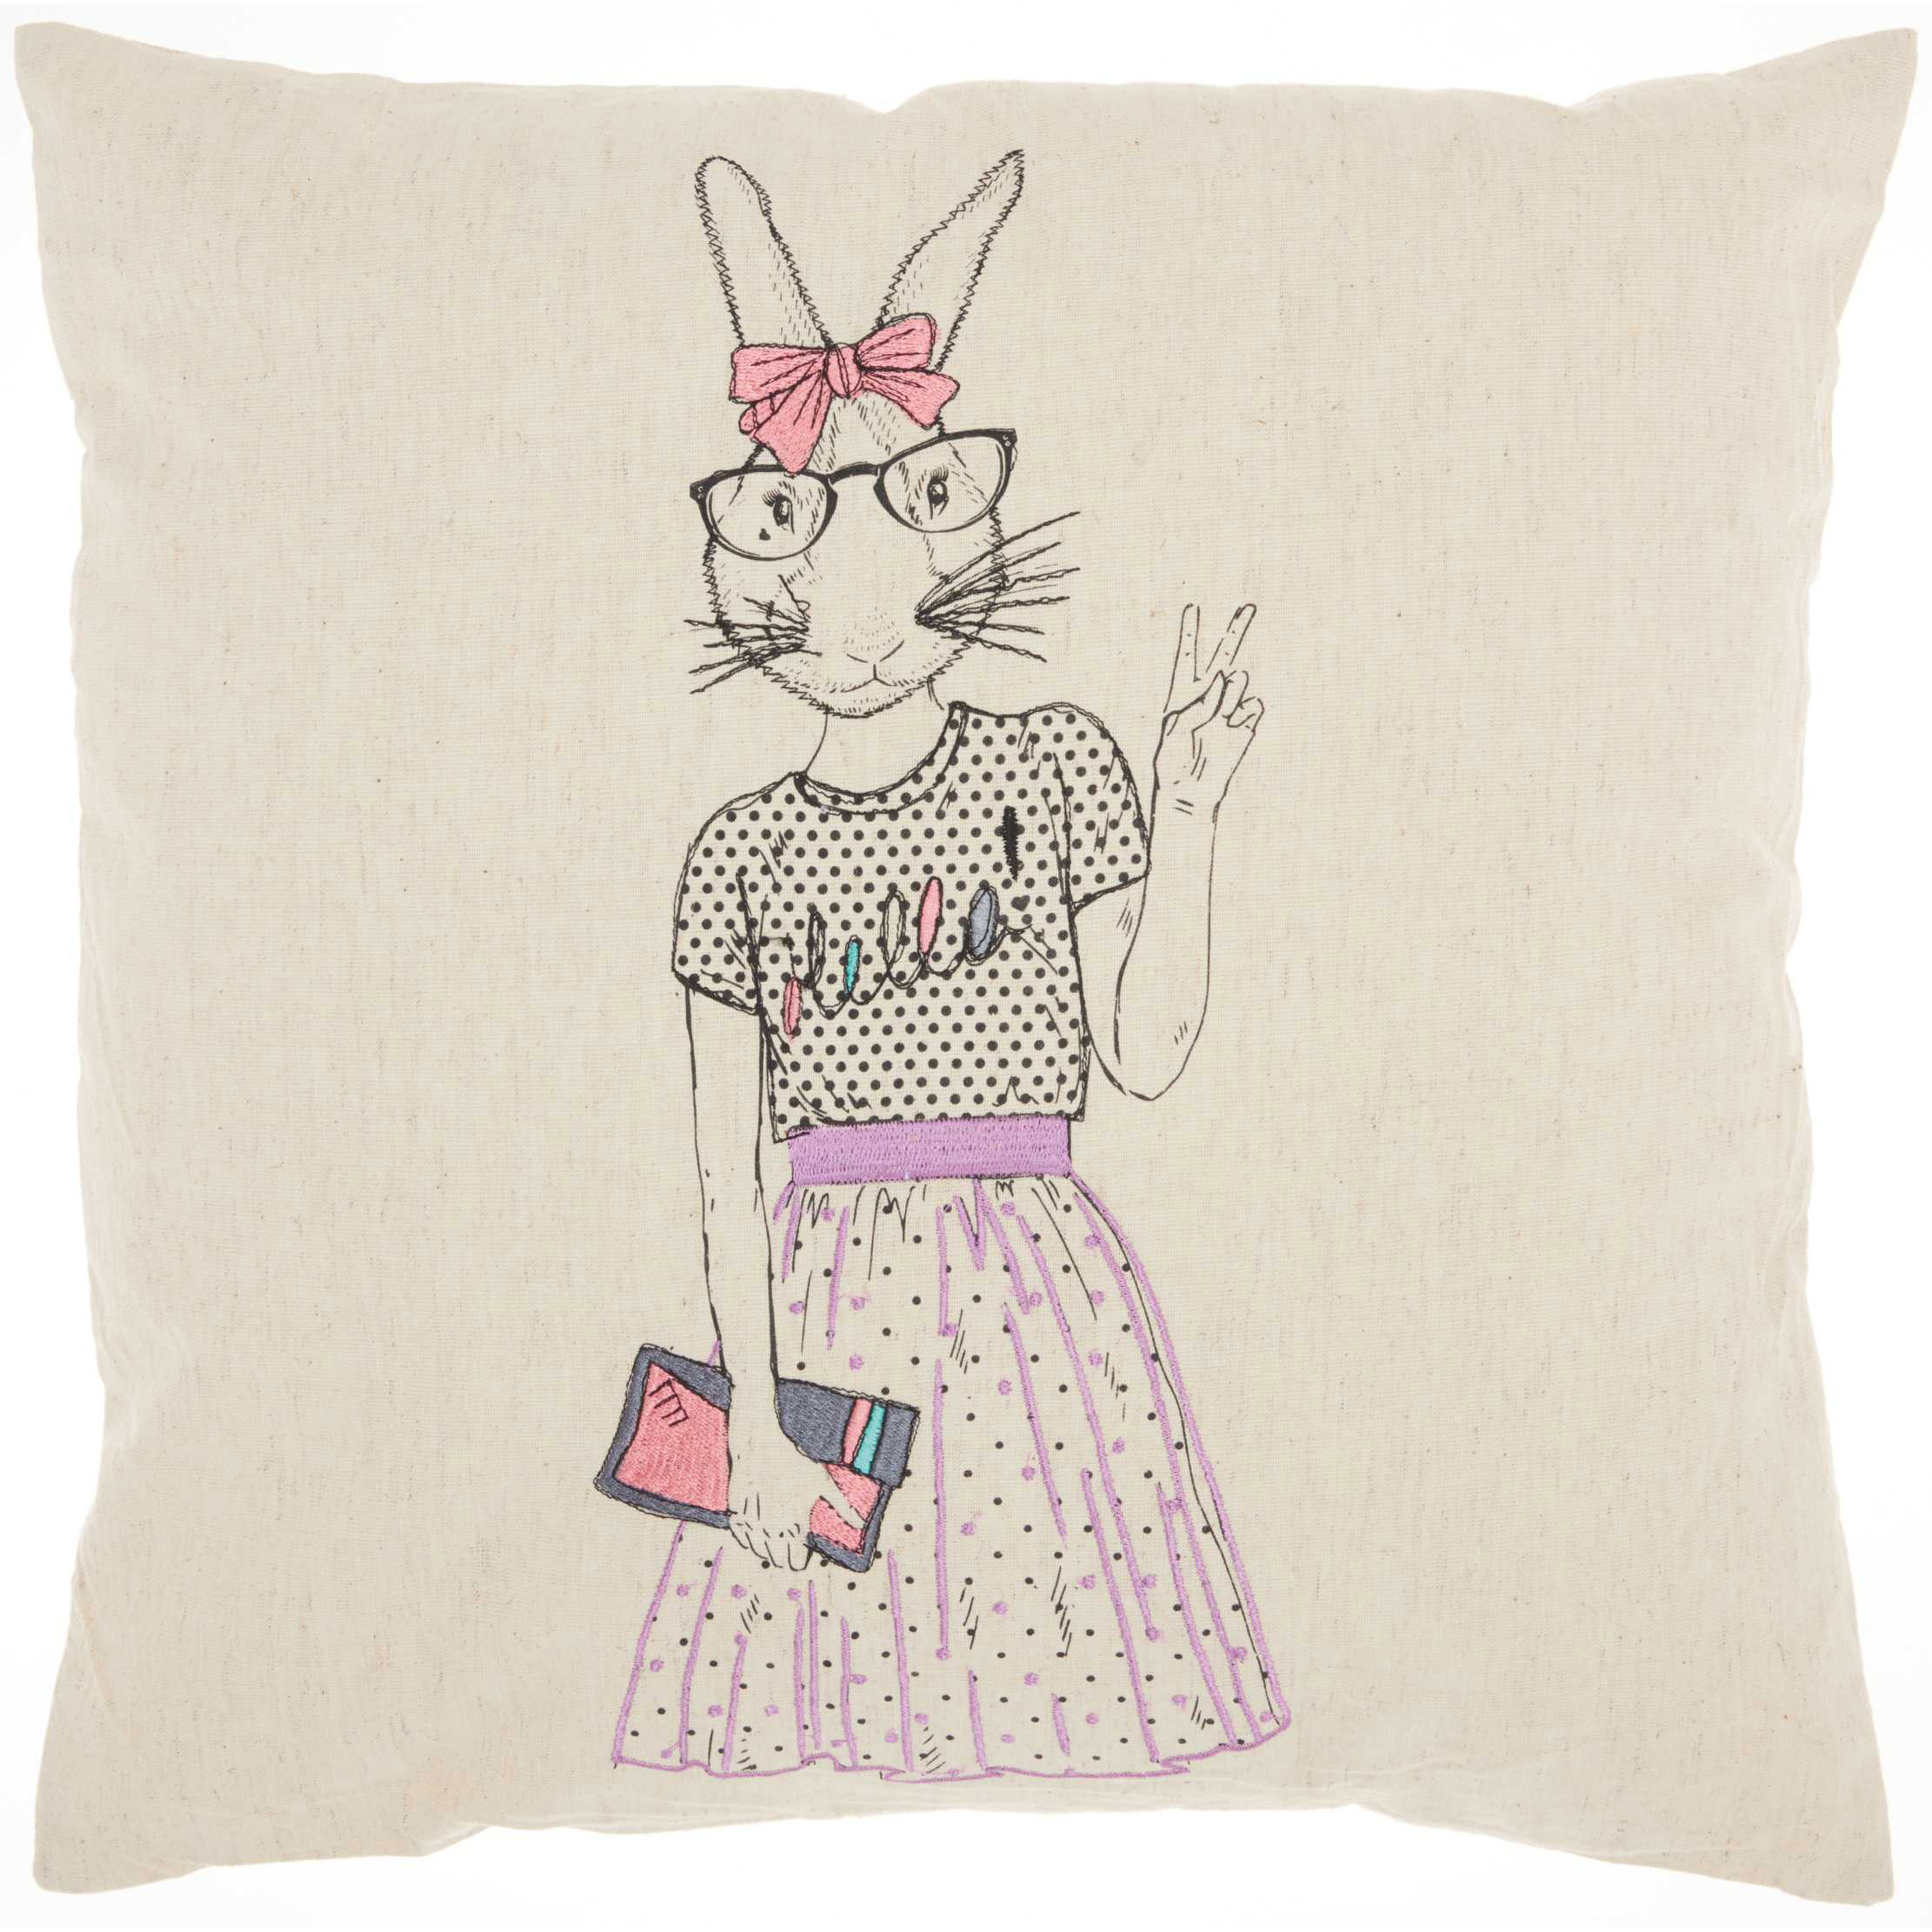 "Nourison Trendy, Hip, & New Age Cute Peace Bunny Decorative Throw Pillow, 18"" x 18"", Natural"